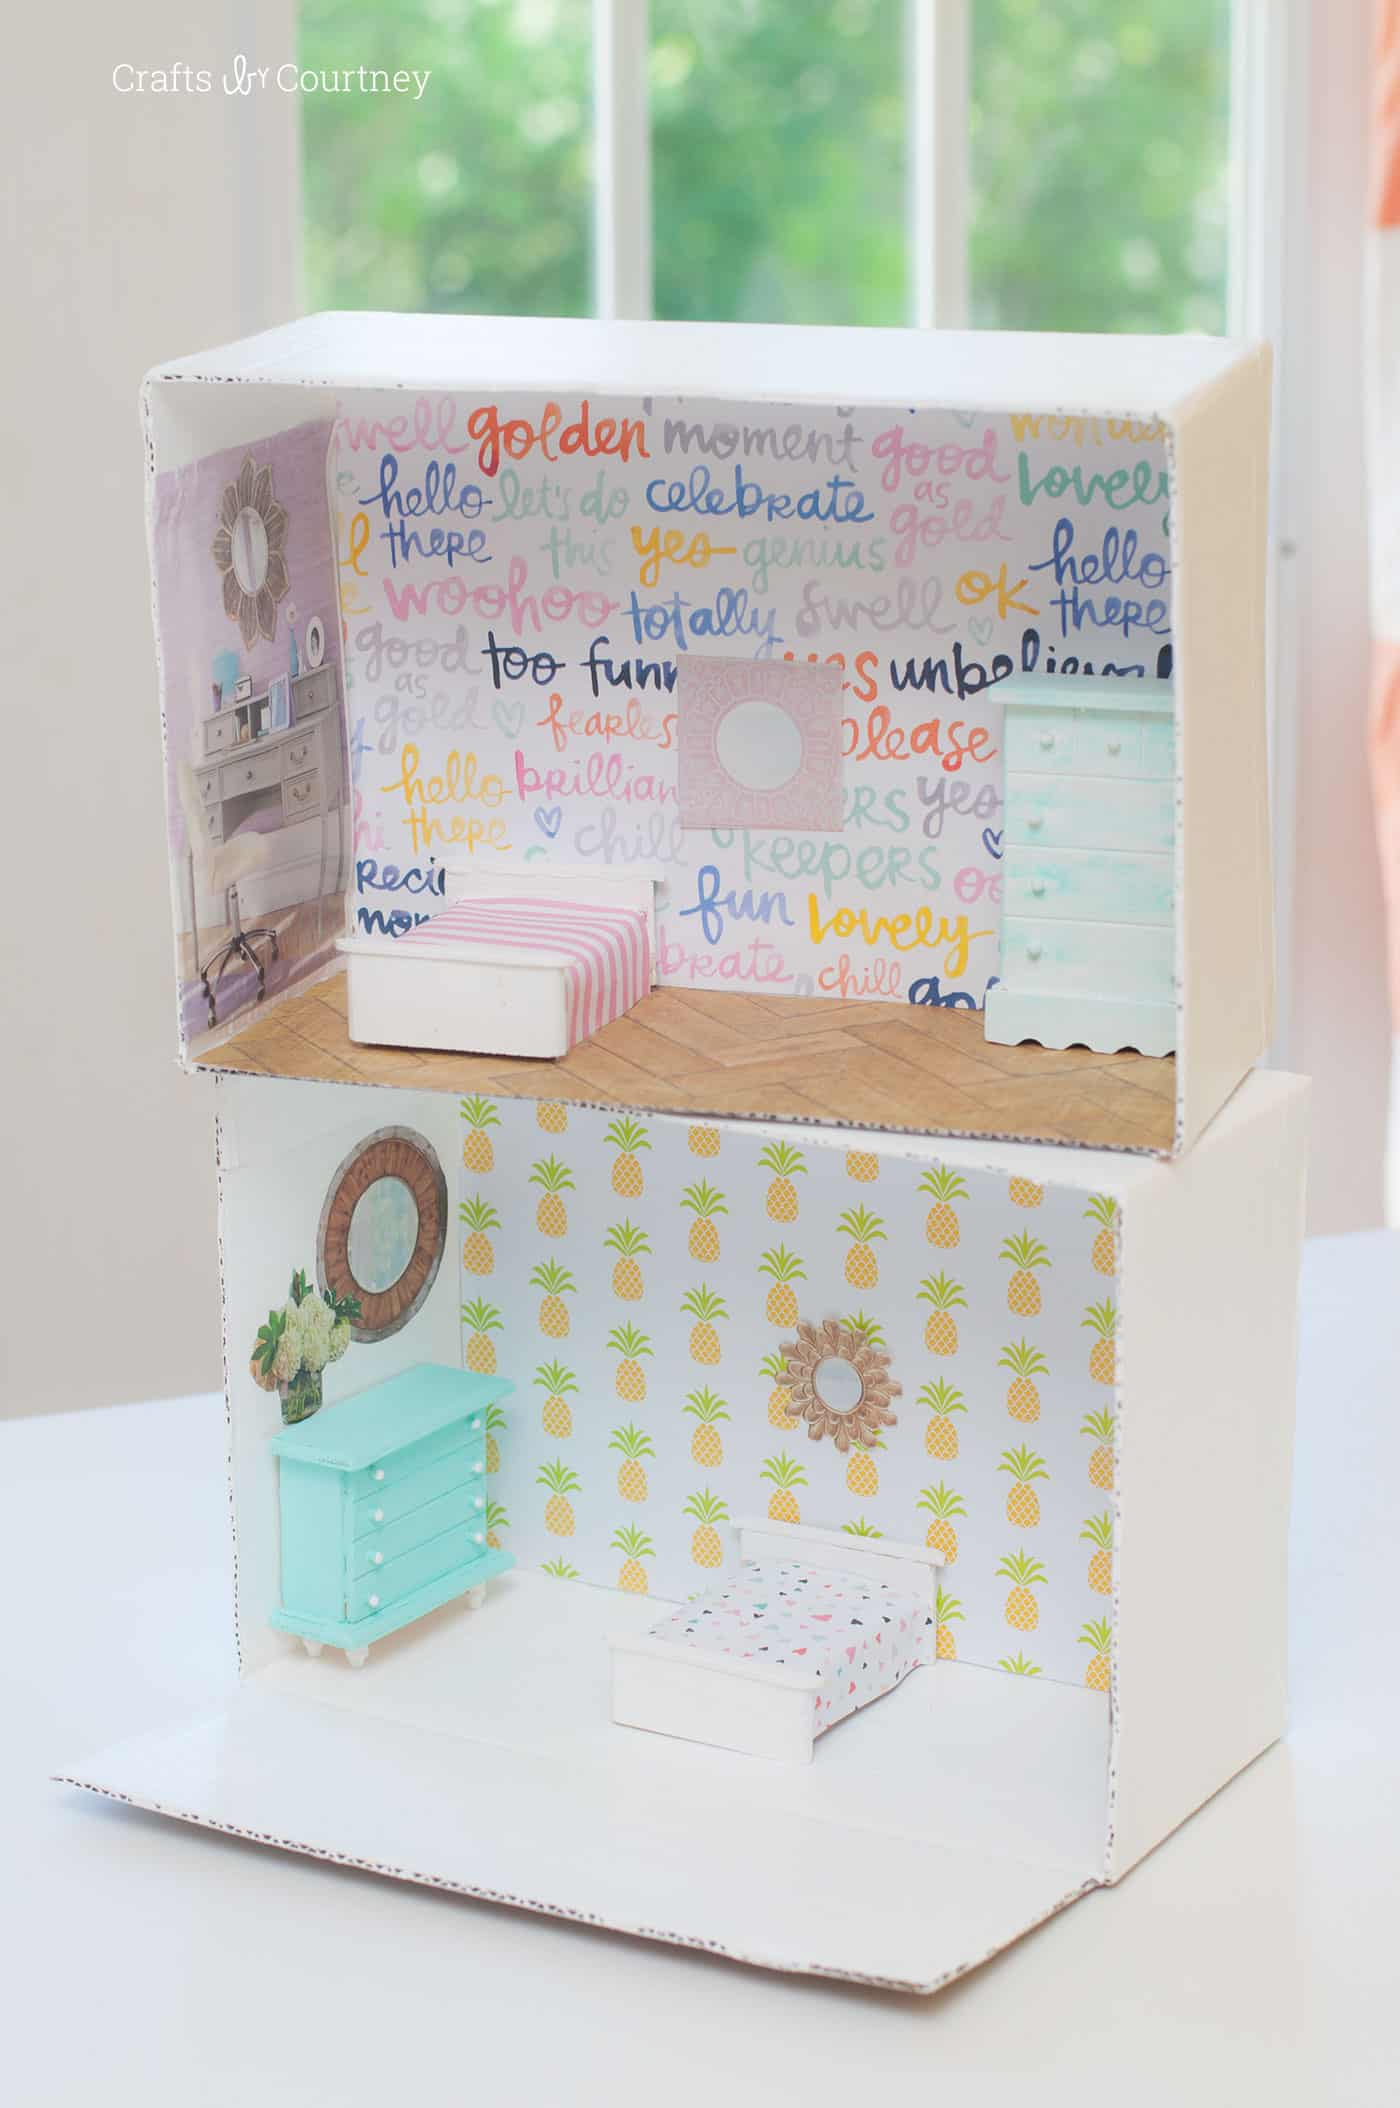 Doll House Craft From A Cardboard Box Mod Podge Rocks